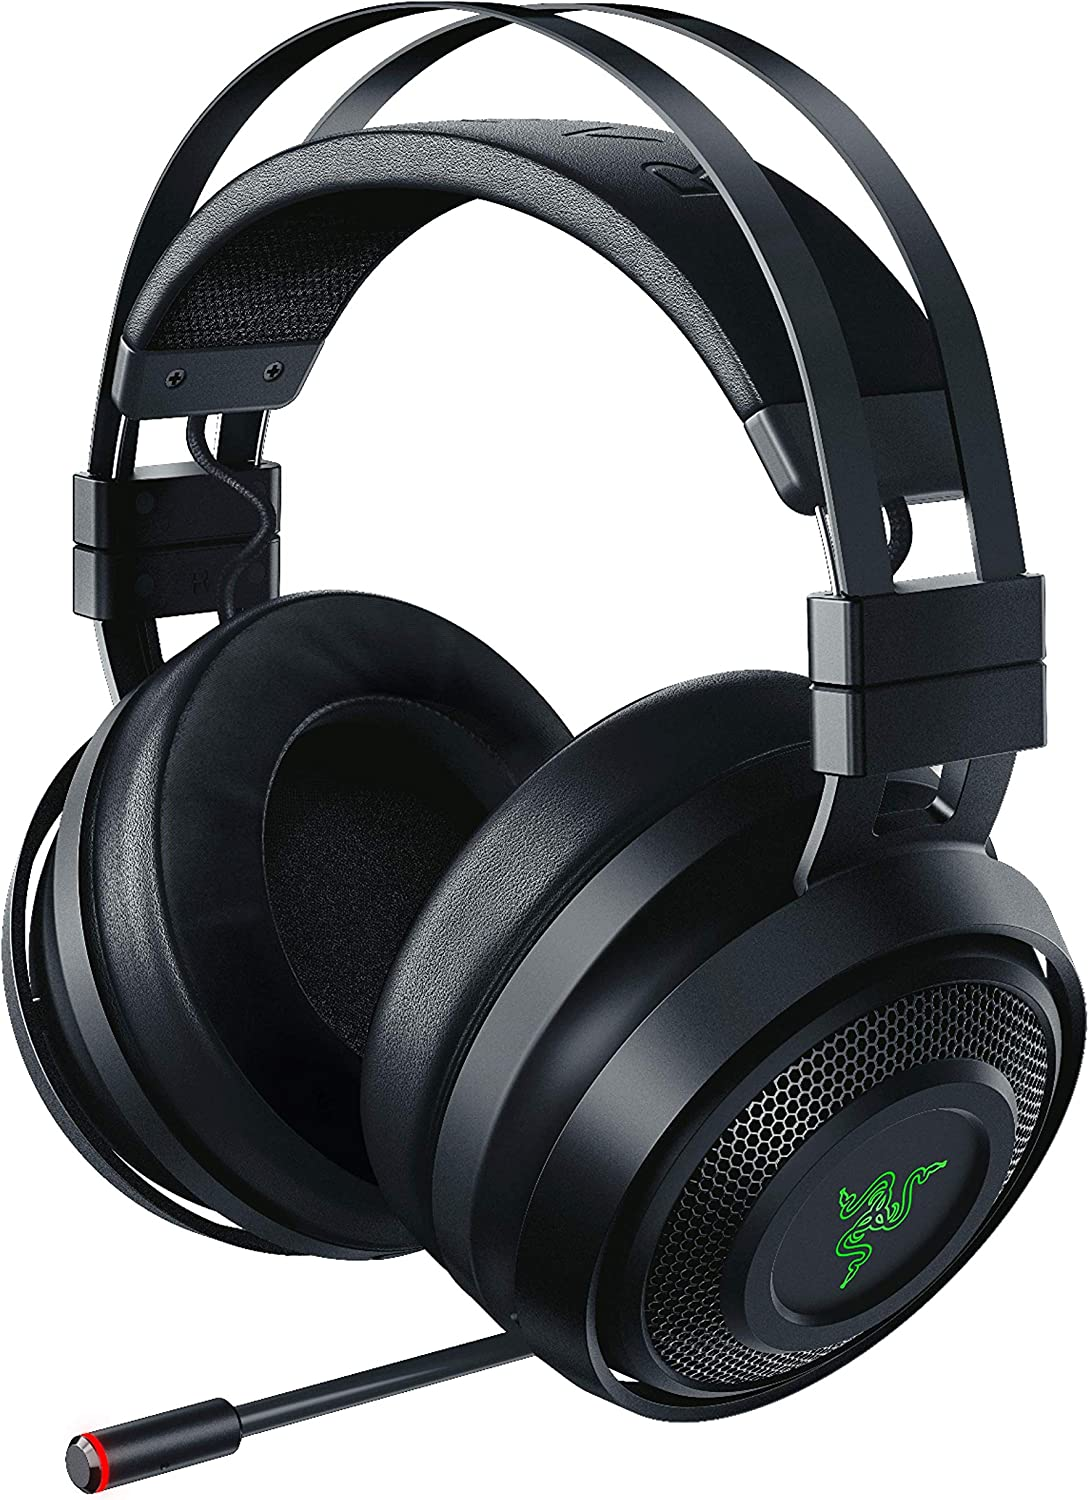 auriculares inalambricos razer Nari 7.1 surround pc ps4